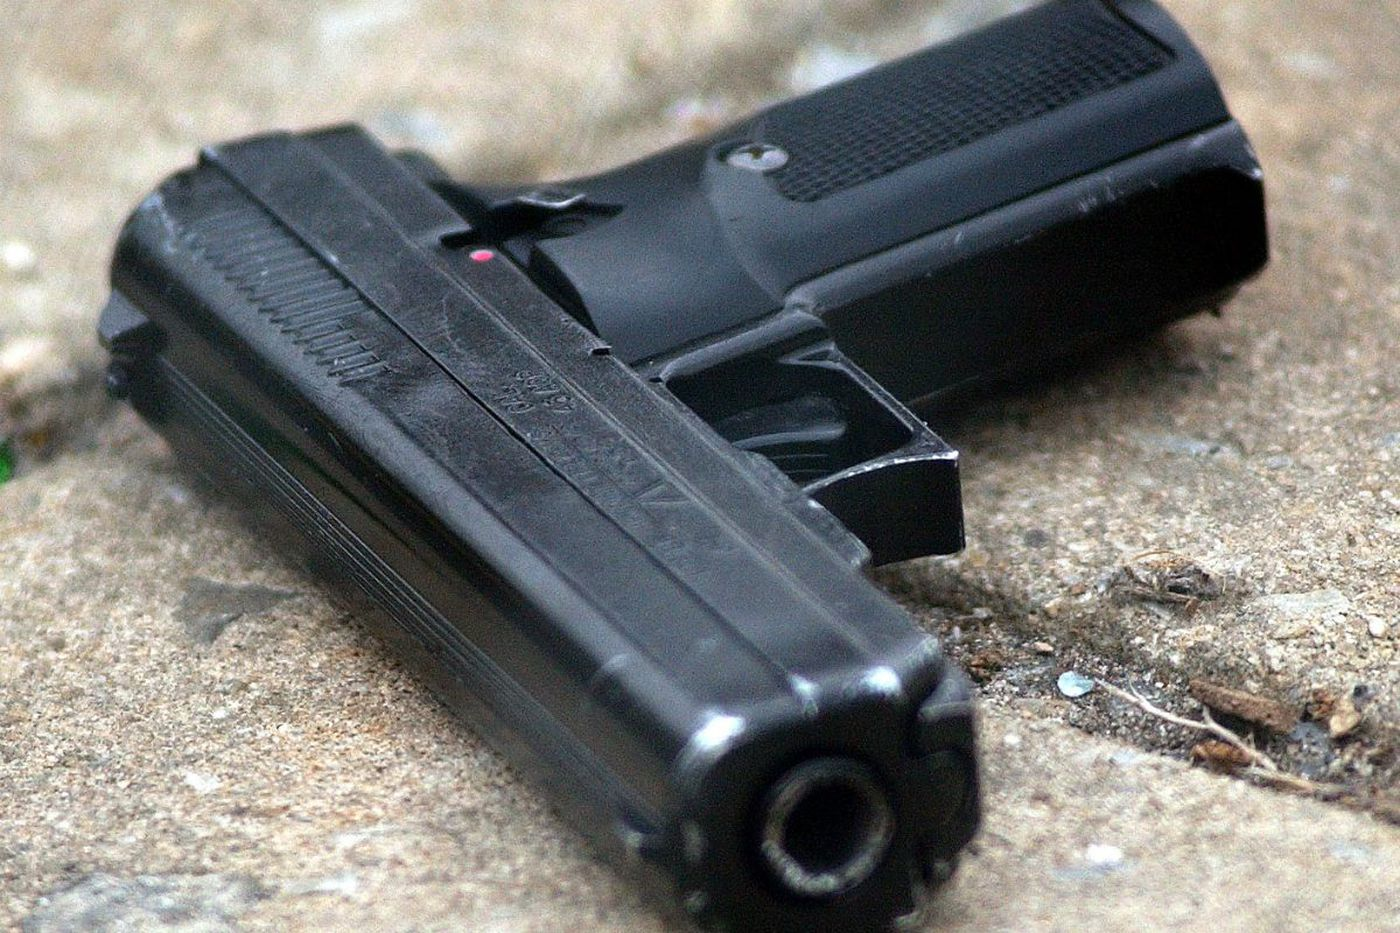 Boy who brought loaded pistol to Society Hill school charged with firearm offenses